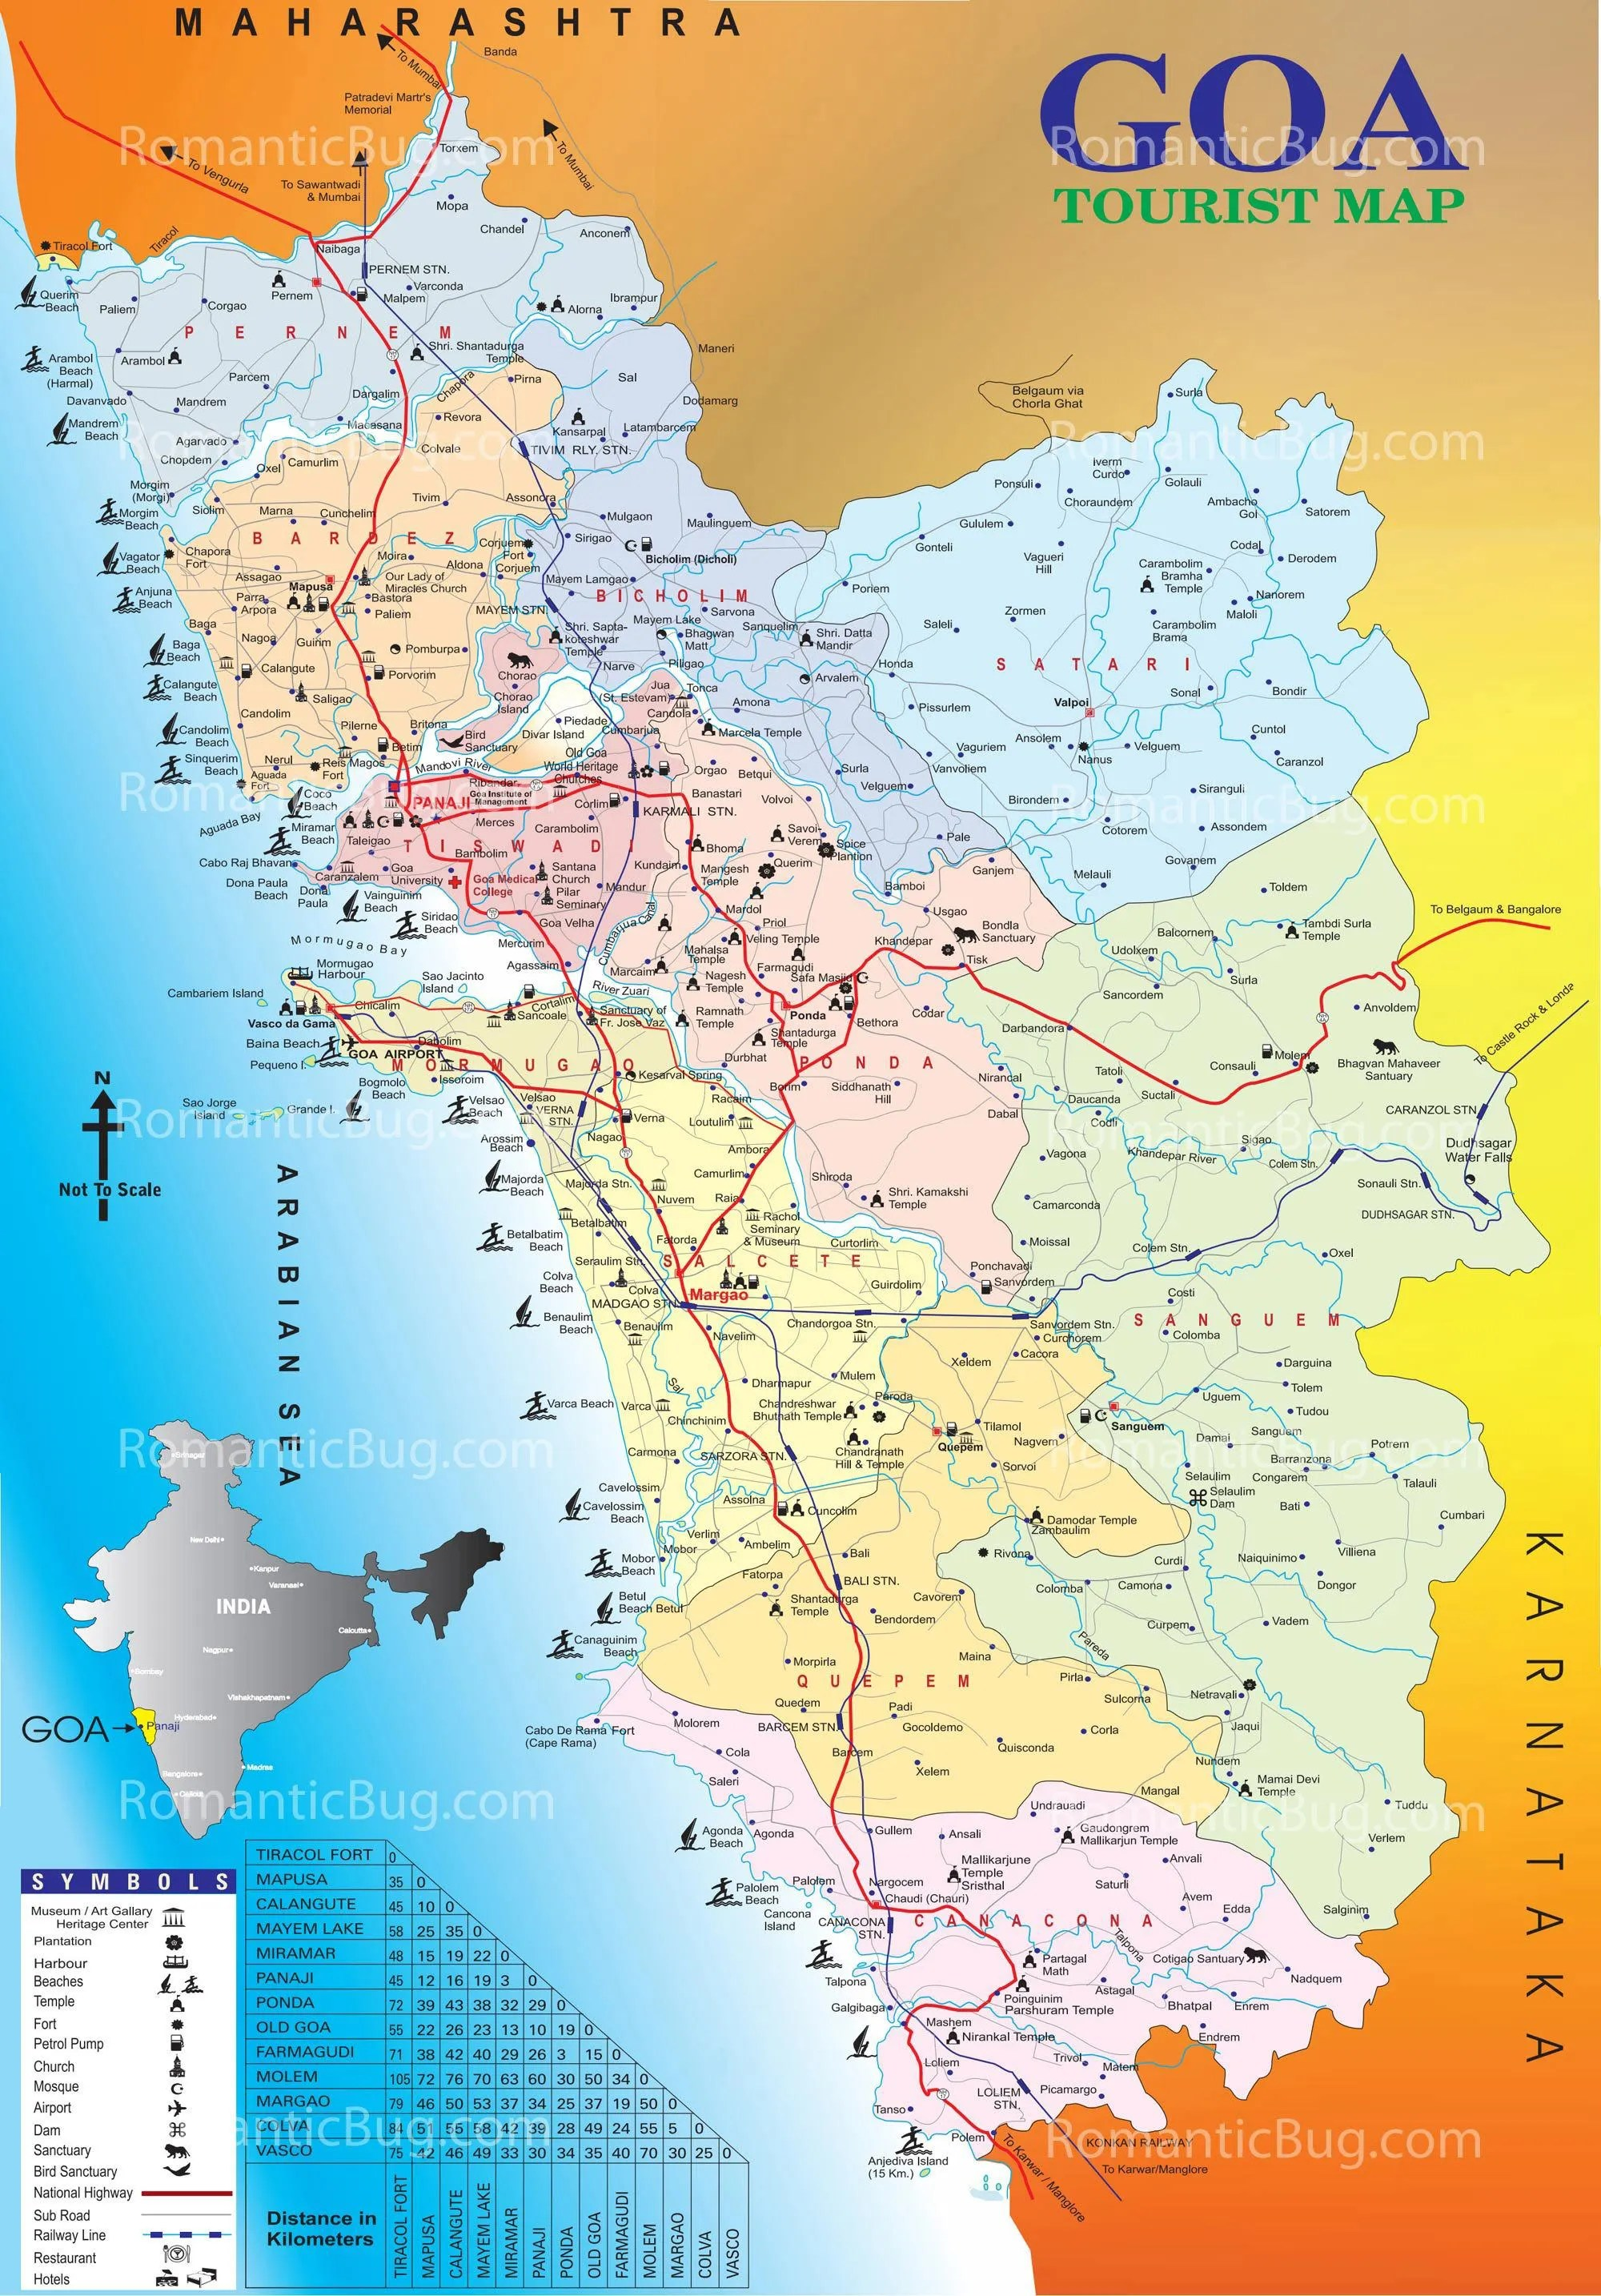 Complete Tourist Map of Goa